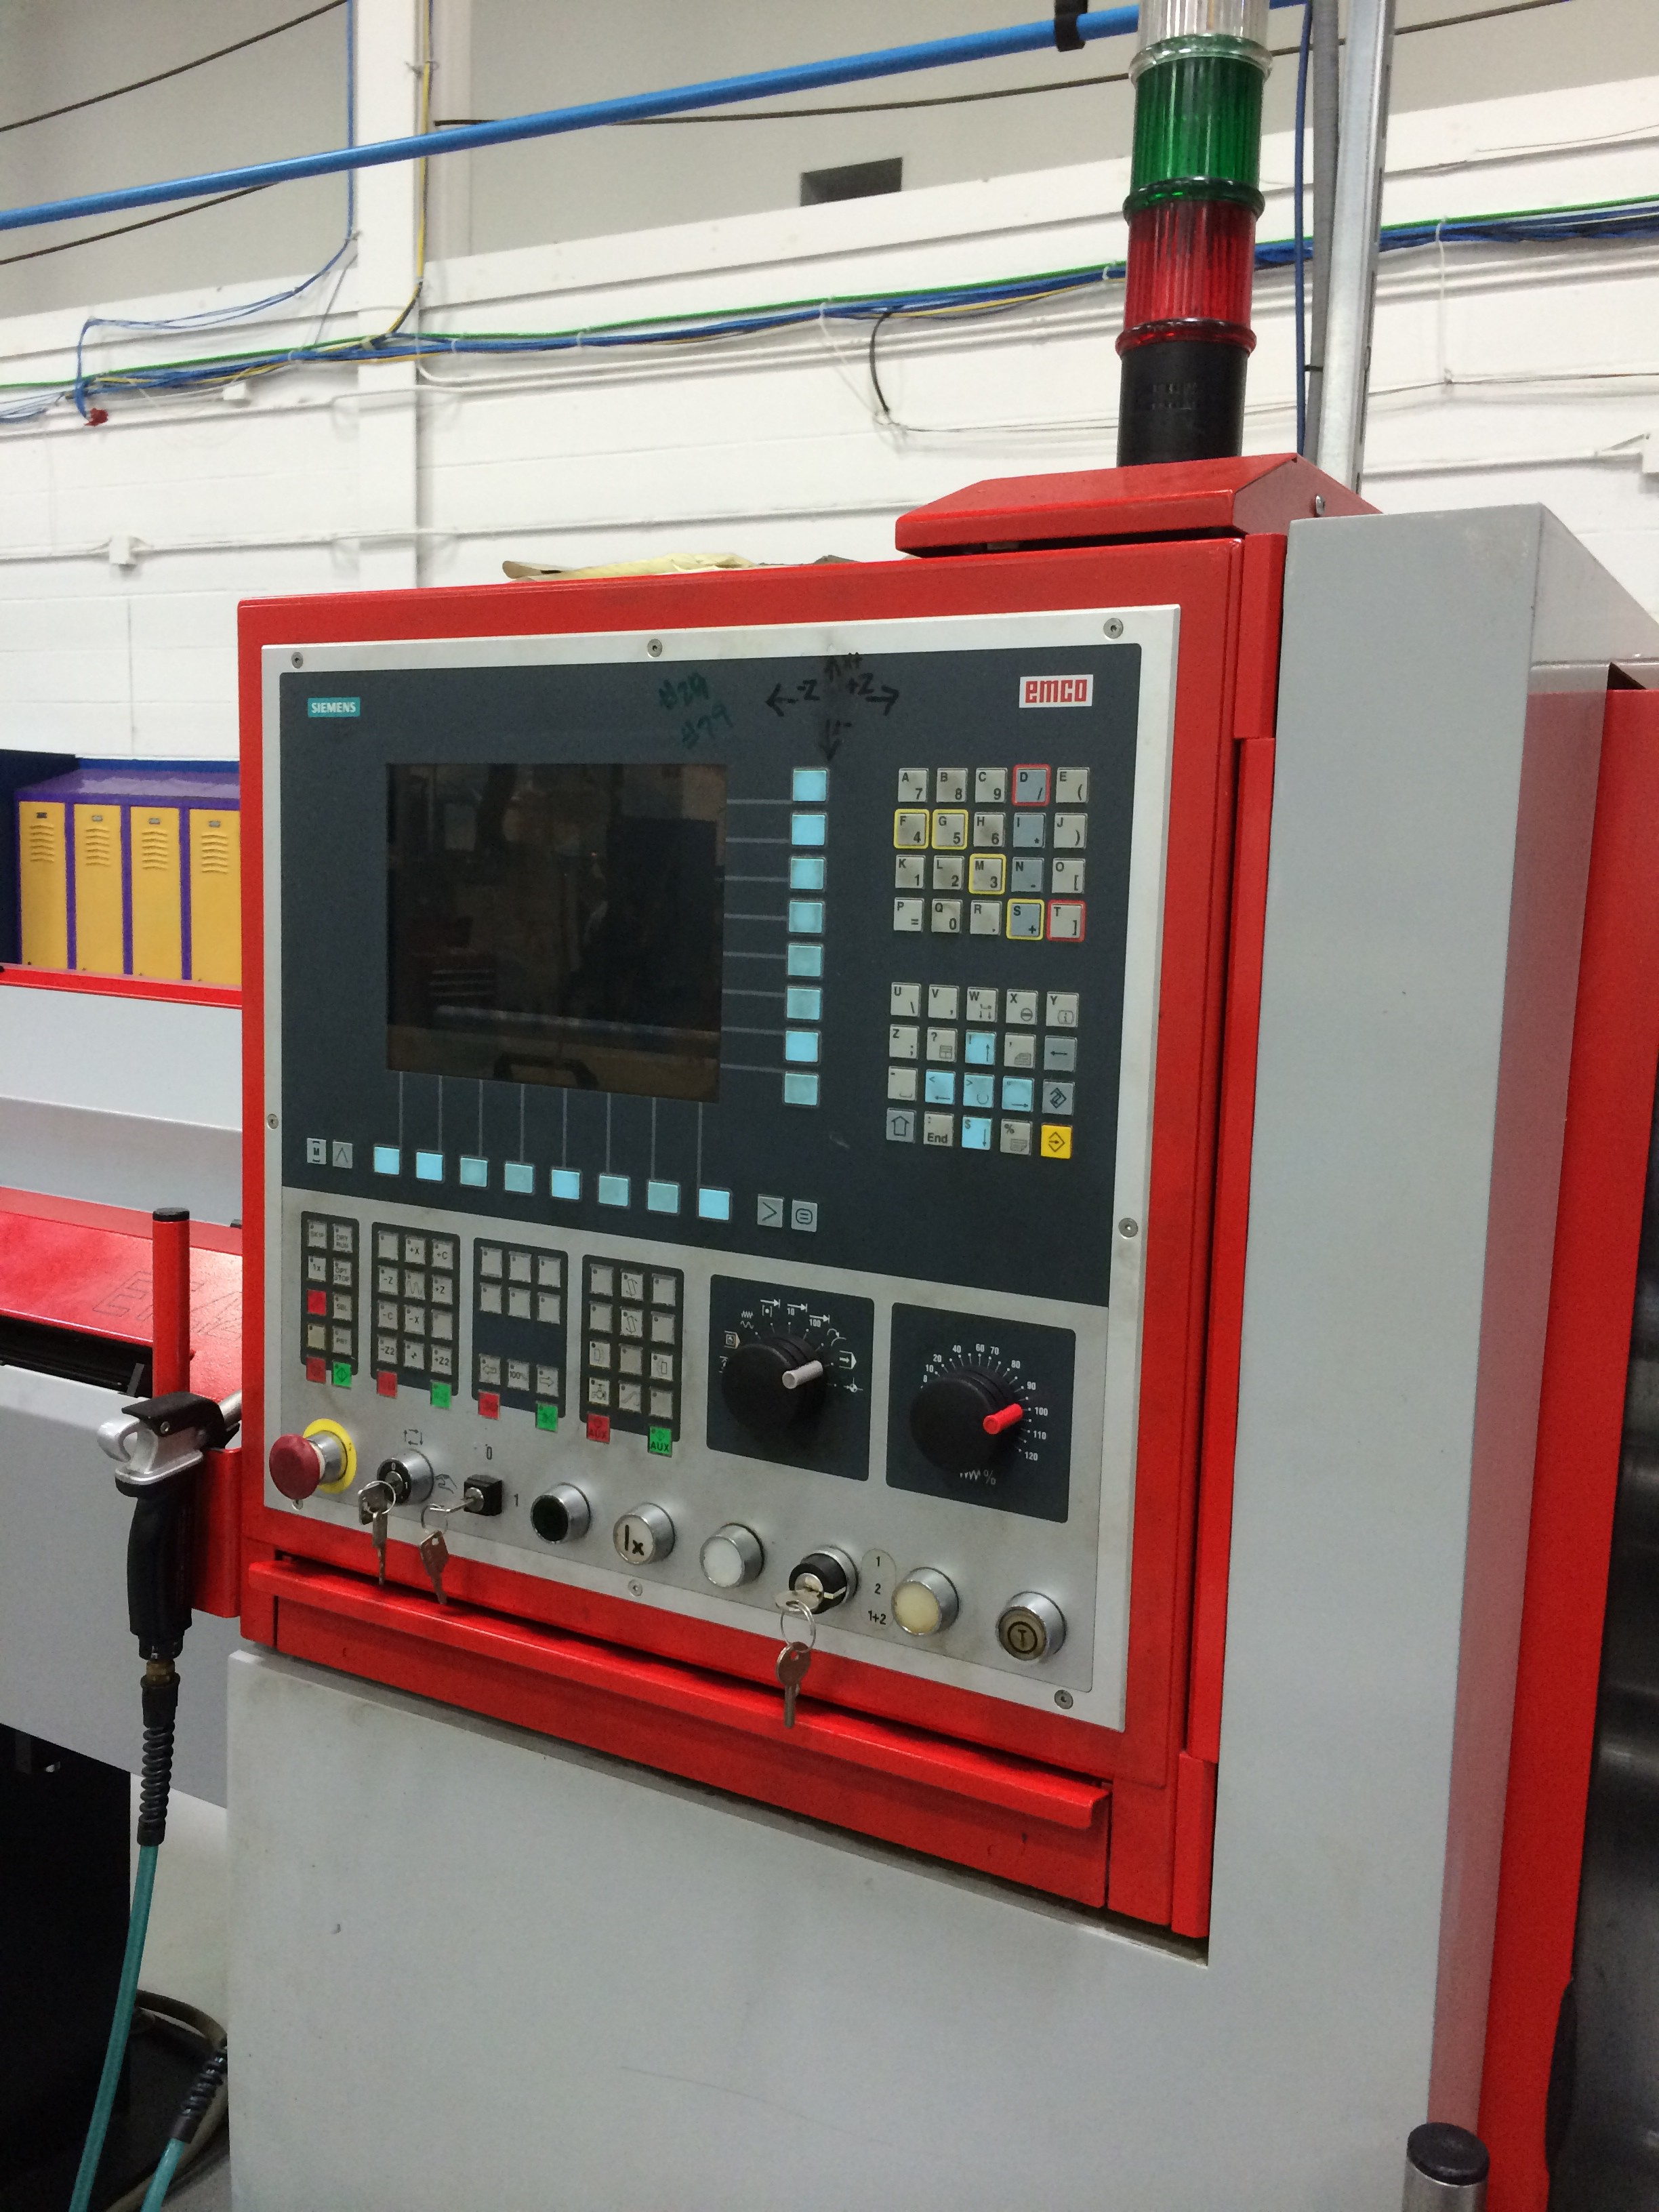 Wohnideen Hueter Rudolf emco early emco compact cnc fitted with the optional position